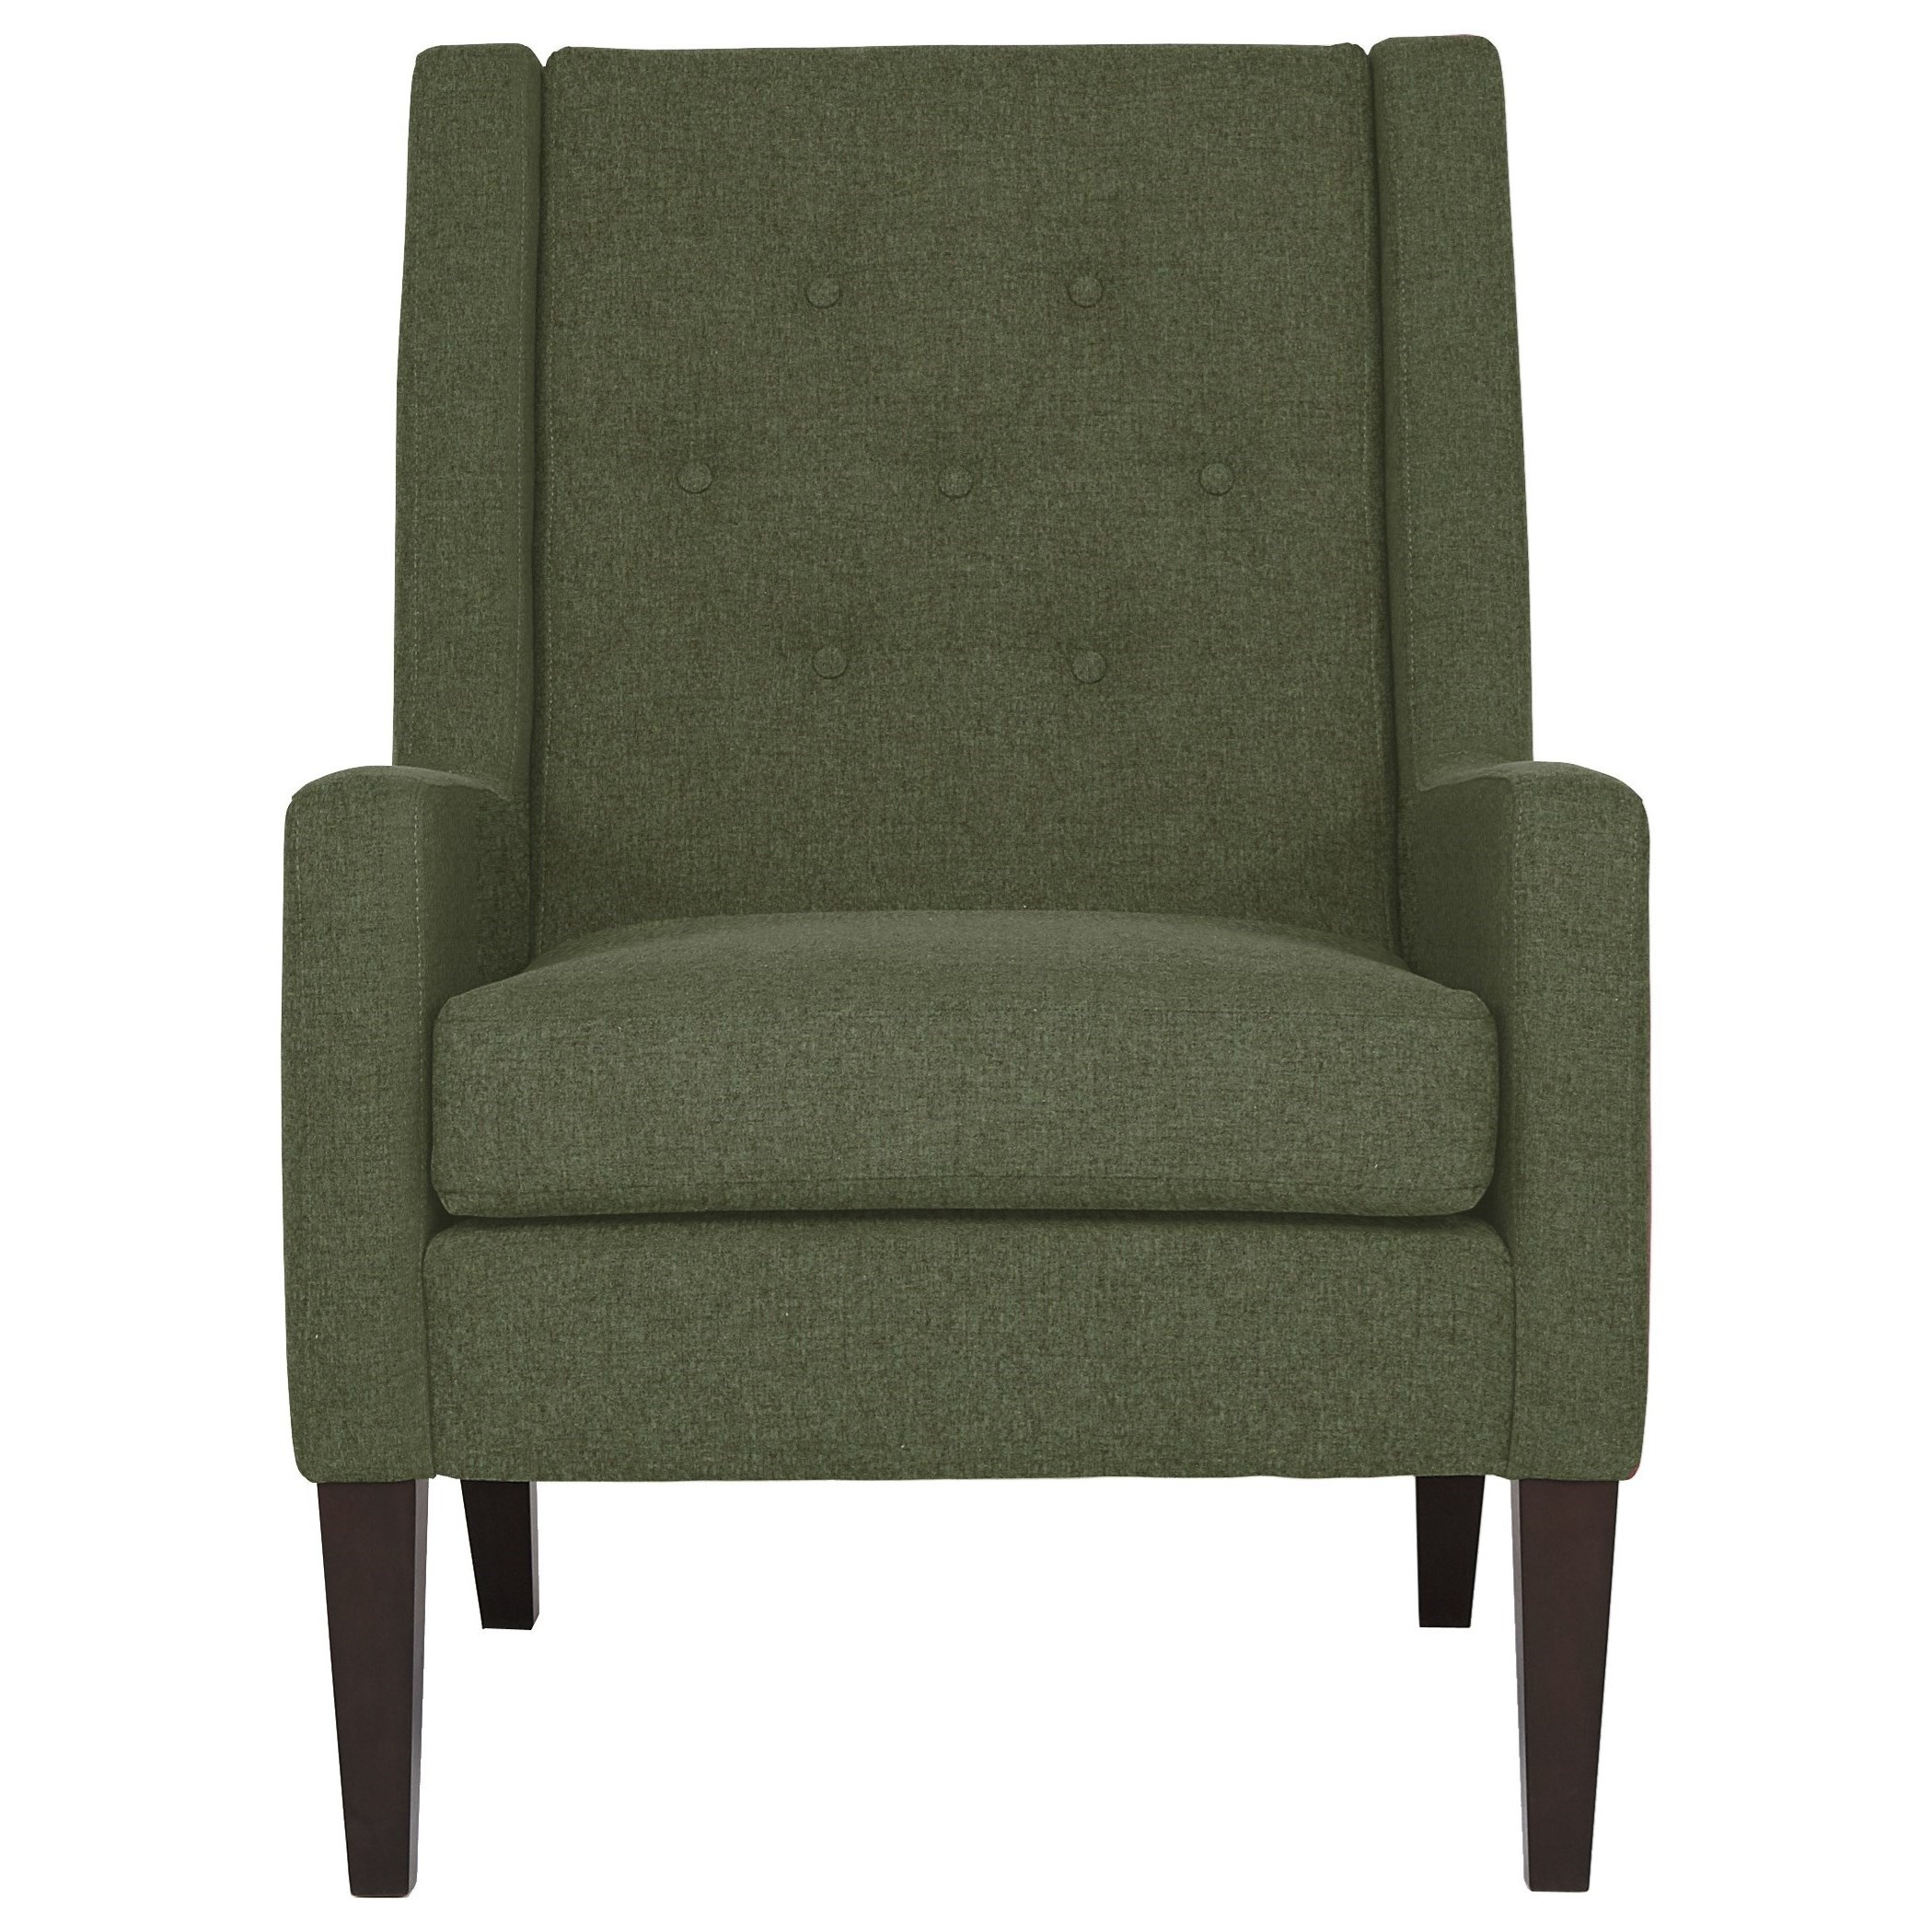 Accent Chairs Chair by Best Home Furnishings at Baer's Furniture